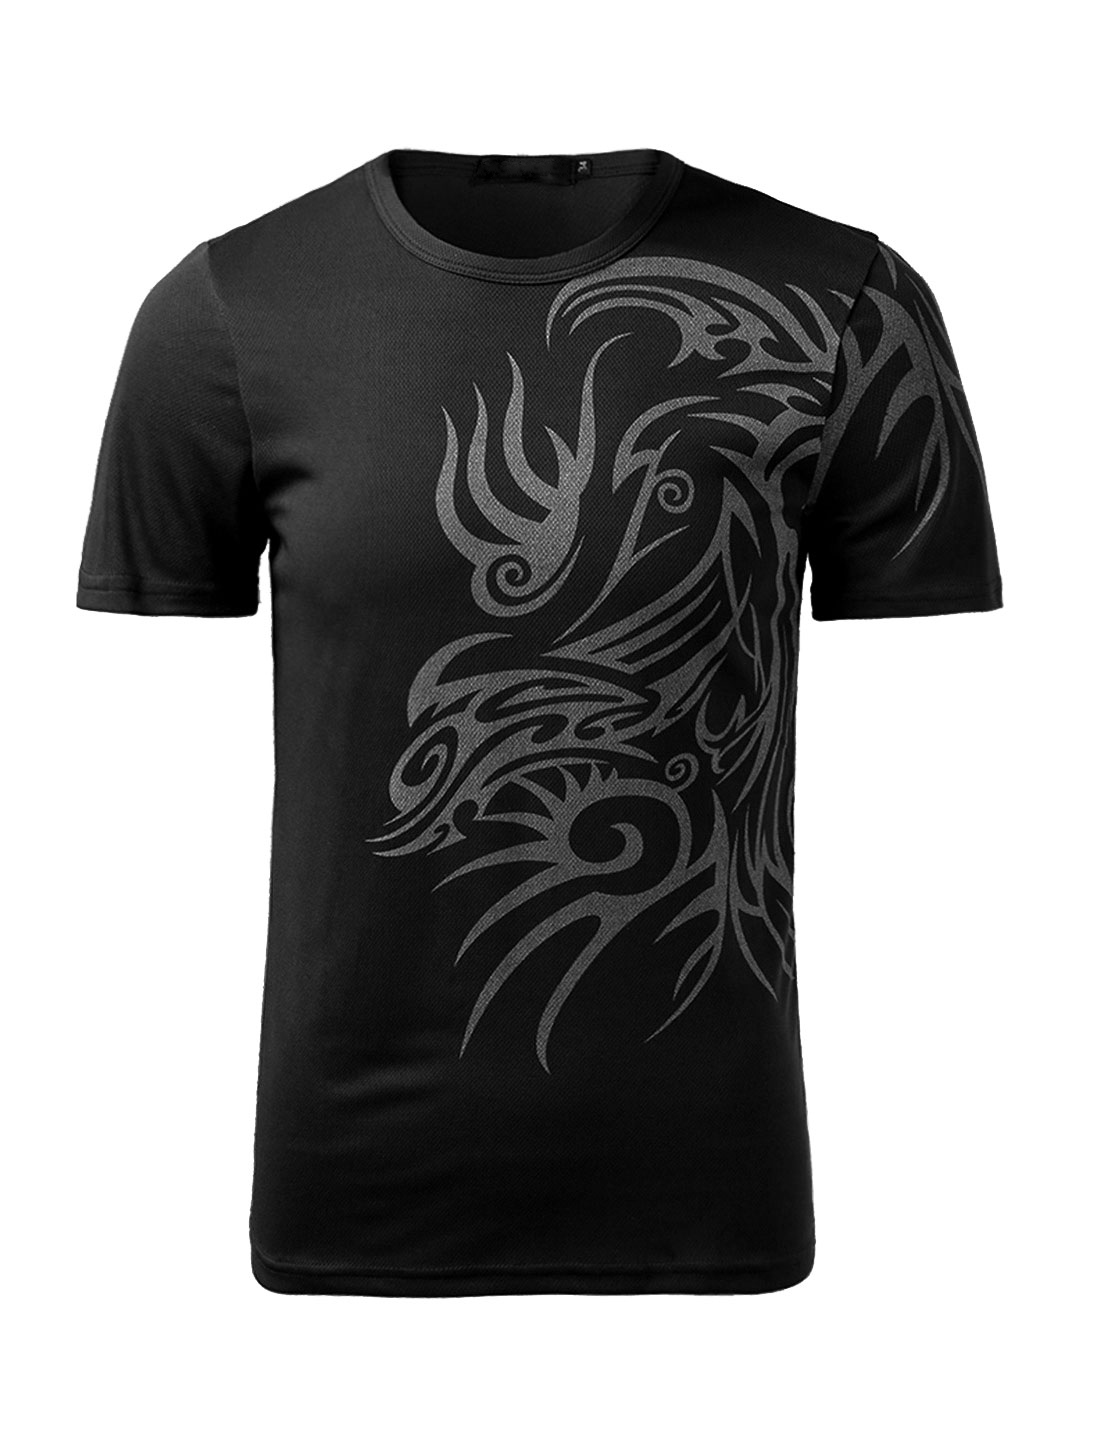 Men Round Neck Short Sleeve Slim Fit Tribal Print Casual T Shirt Black S